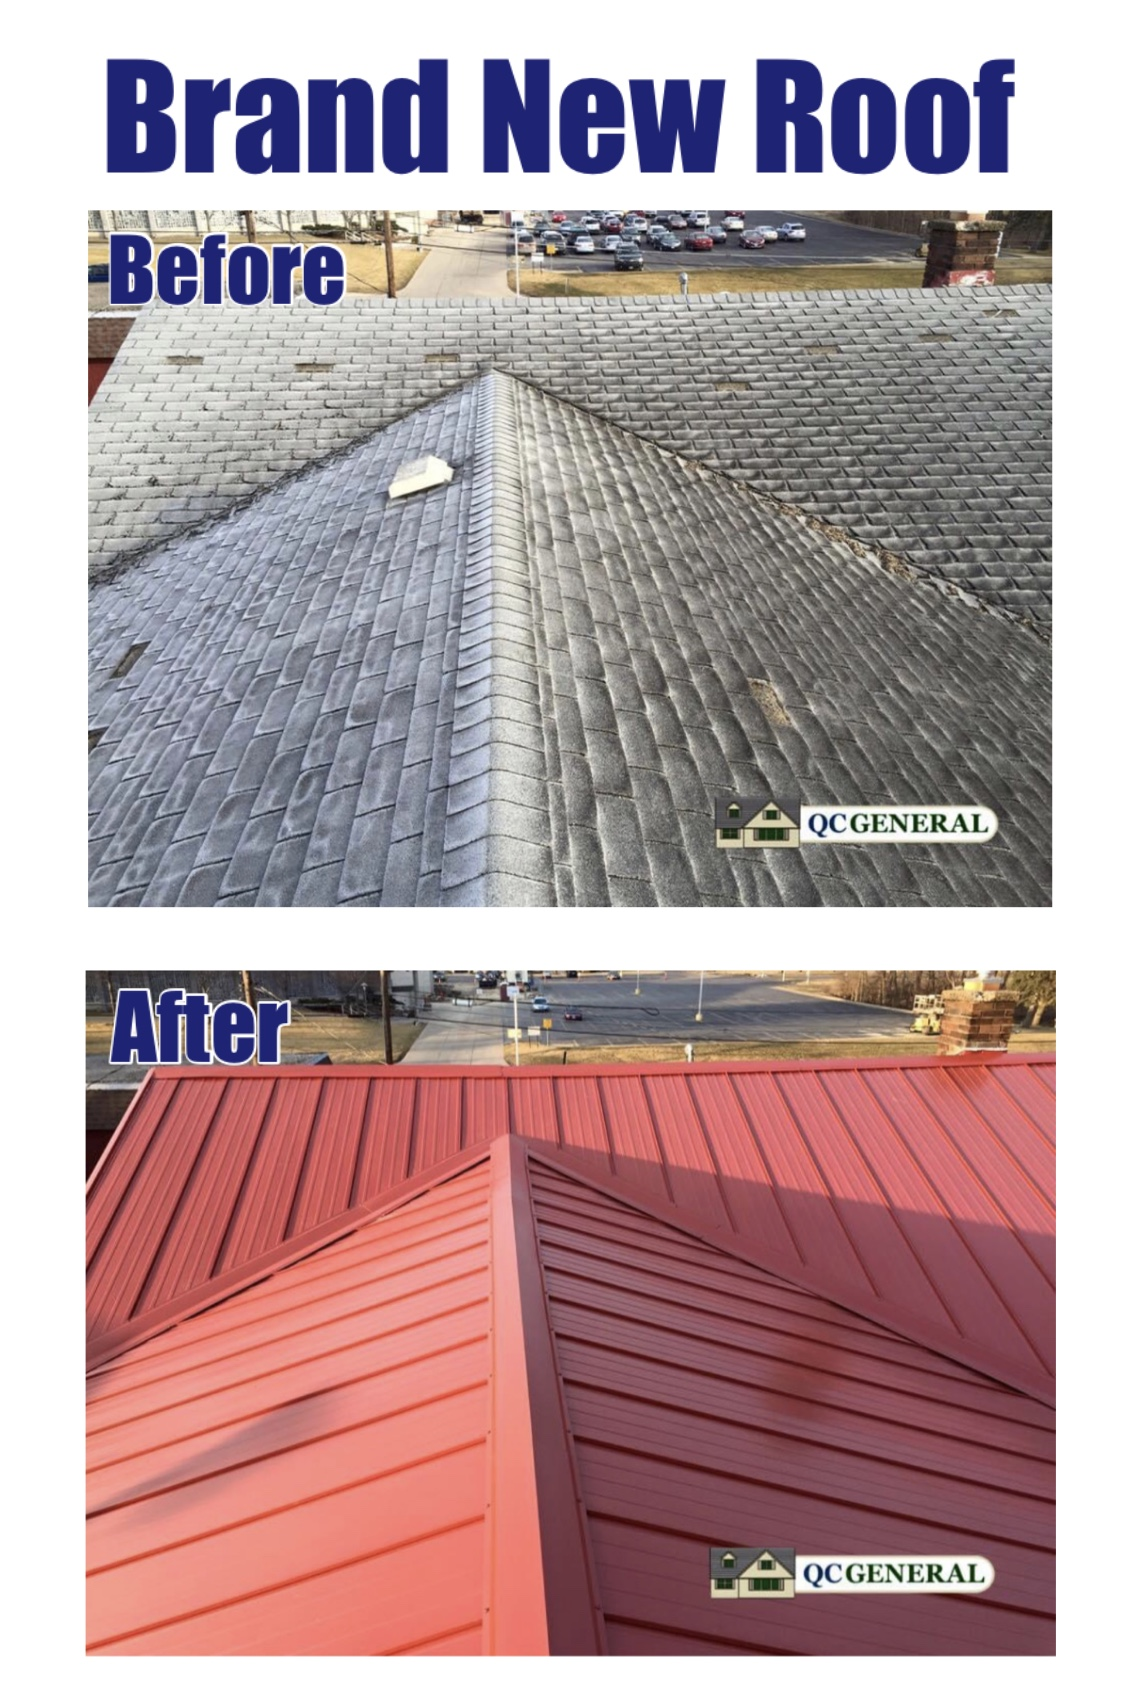 Images of new roof work completed by QC General, where the roof is transformed from faded black shingles to a sturdy metal red roof.